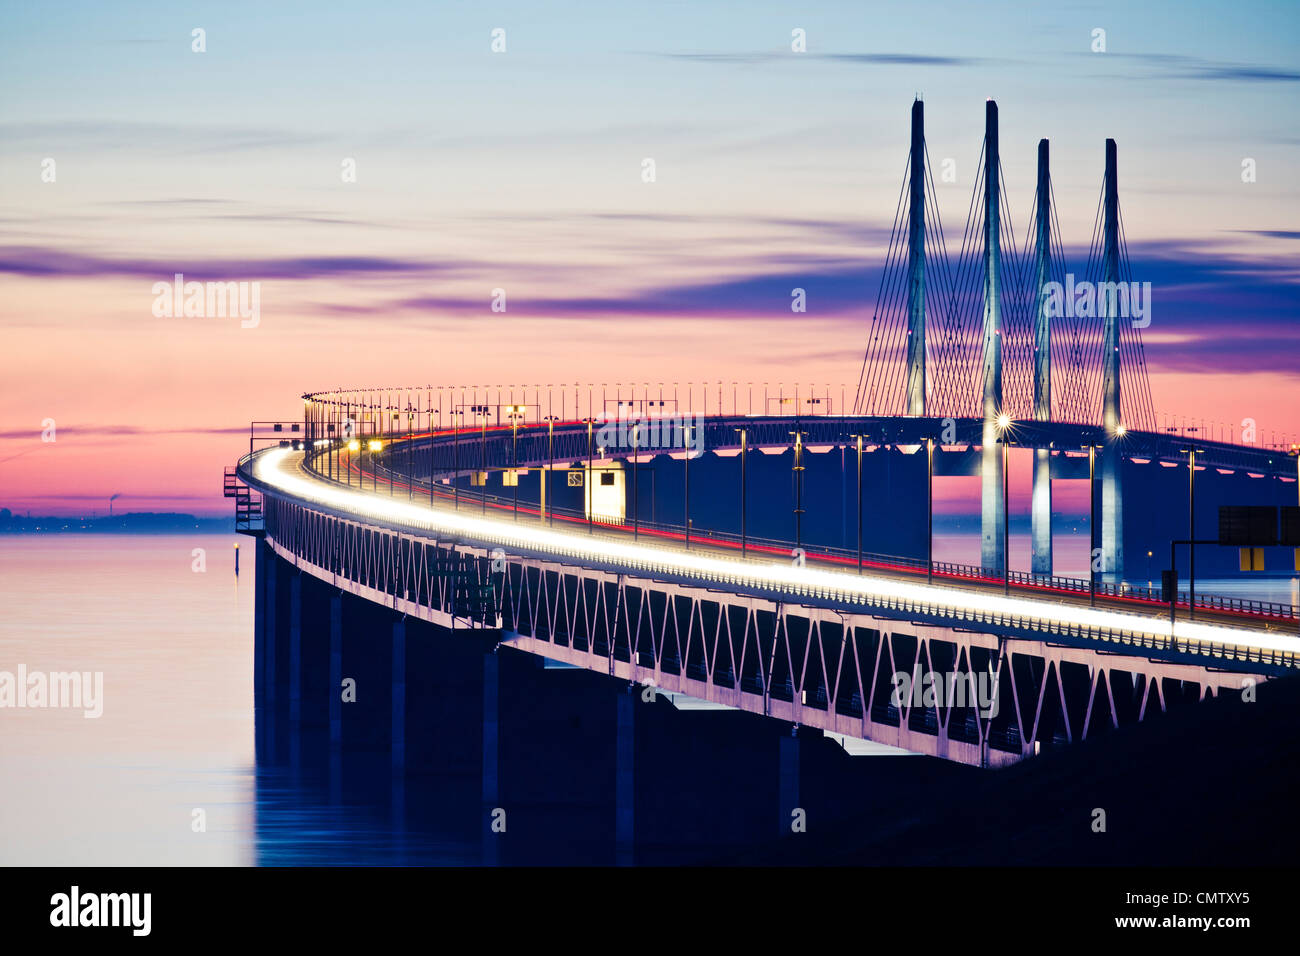 Bridge at night - Stock Image